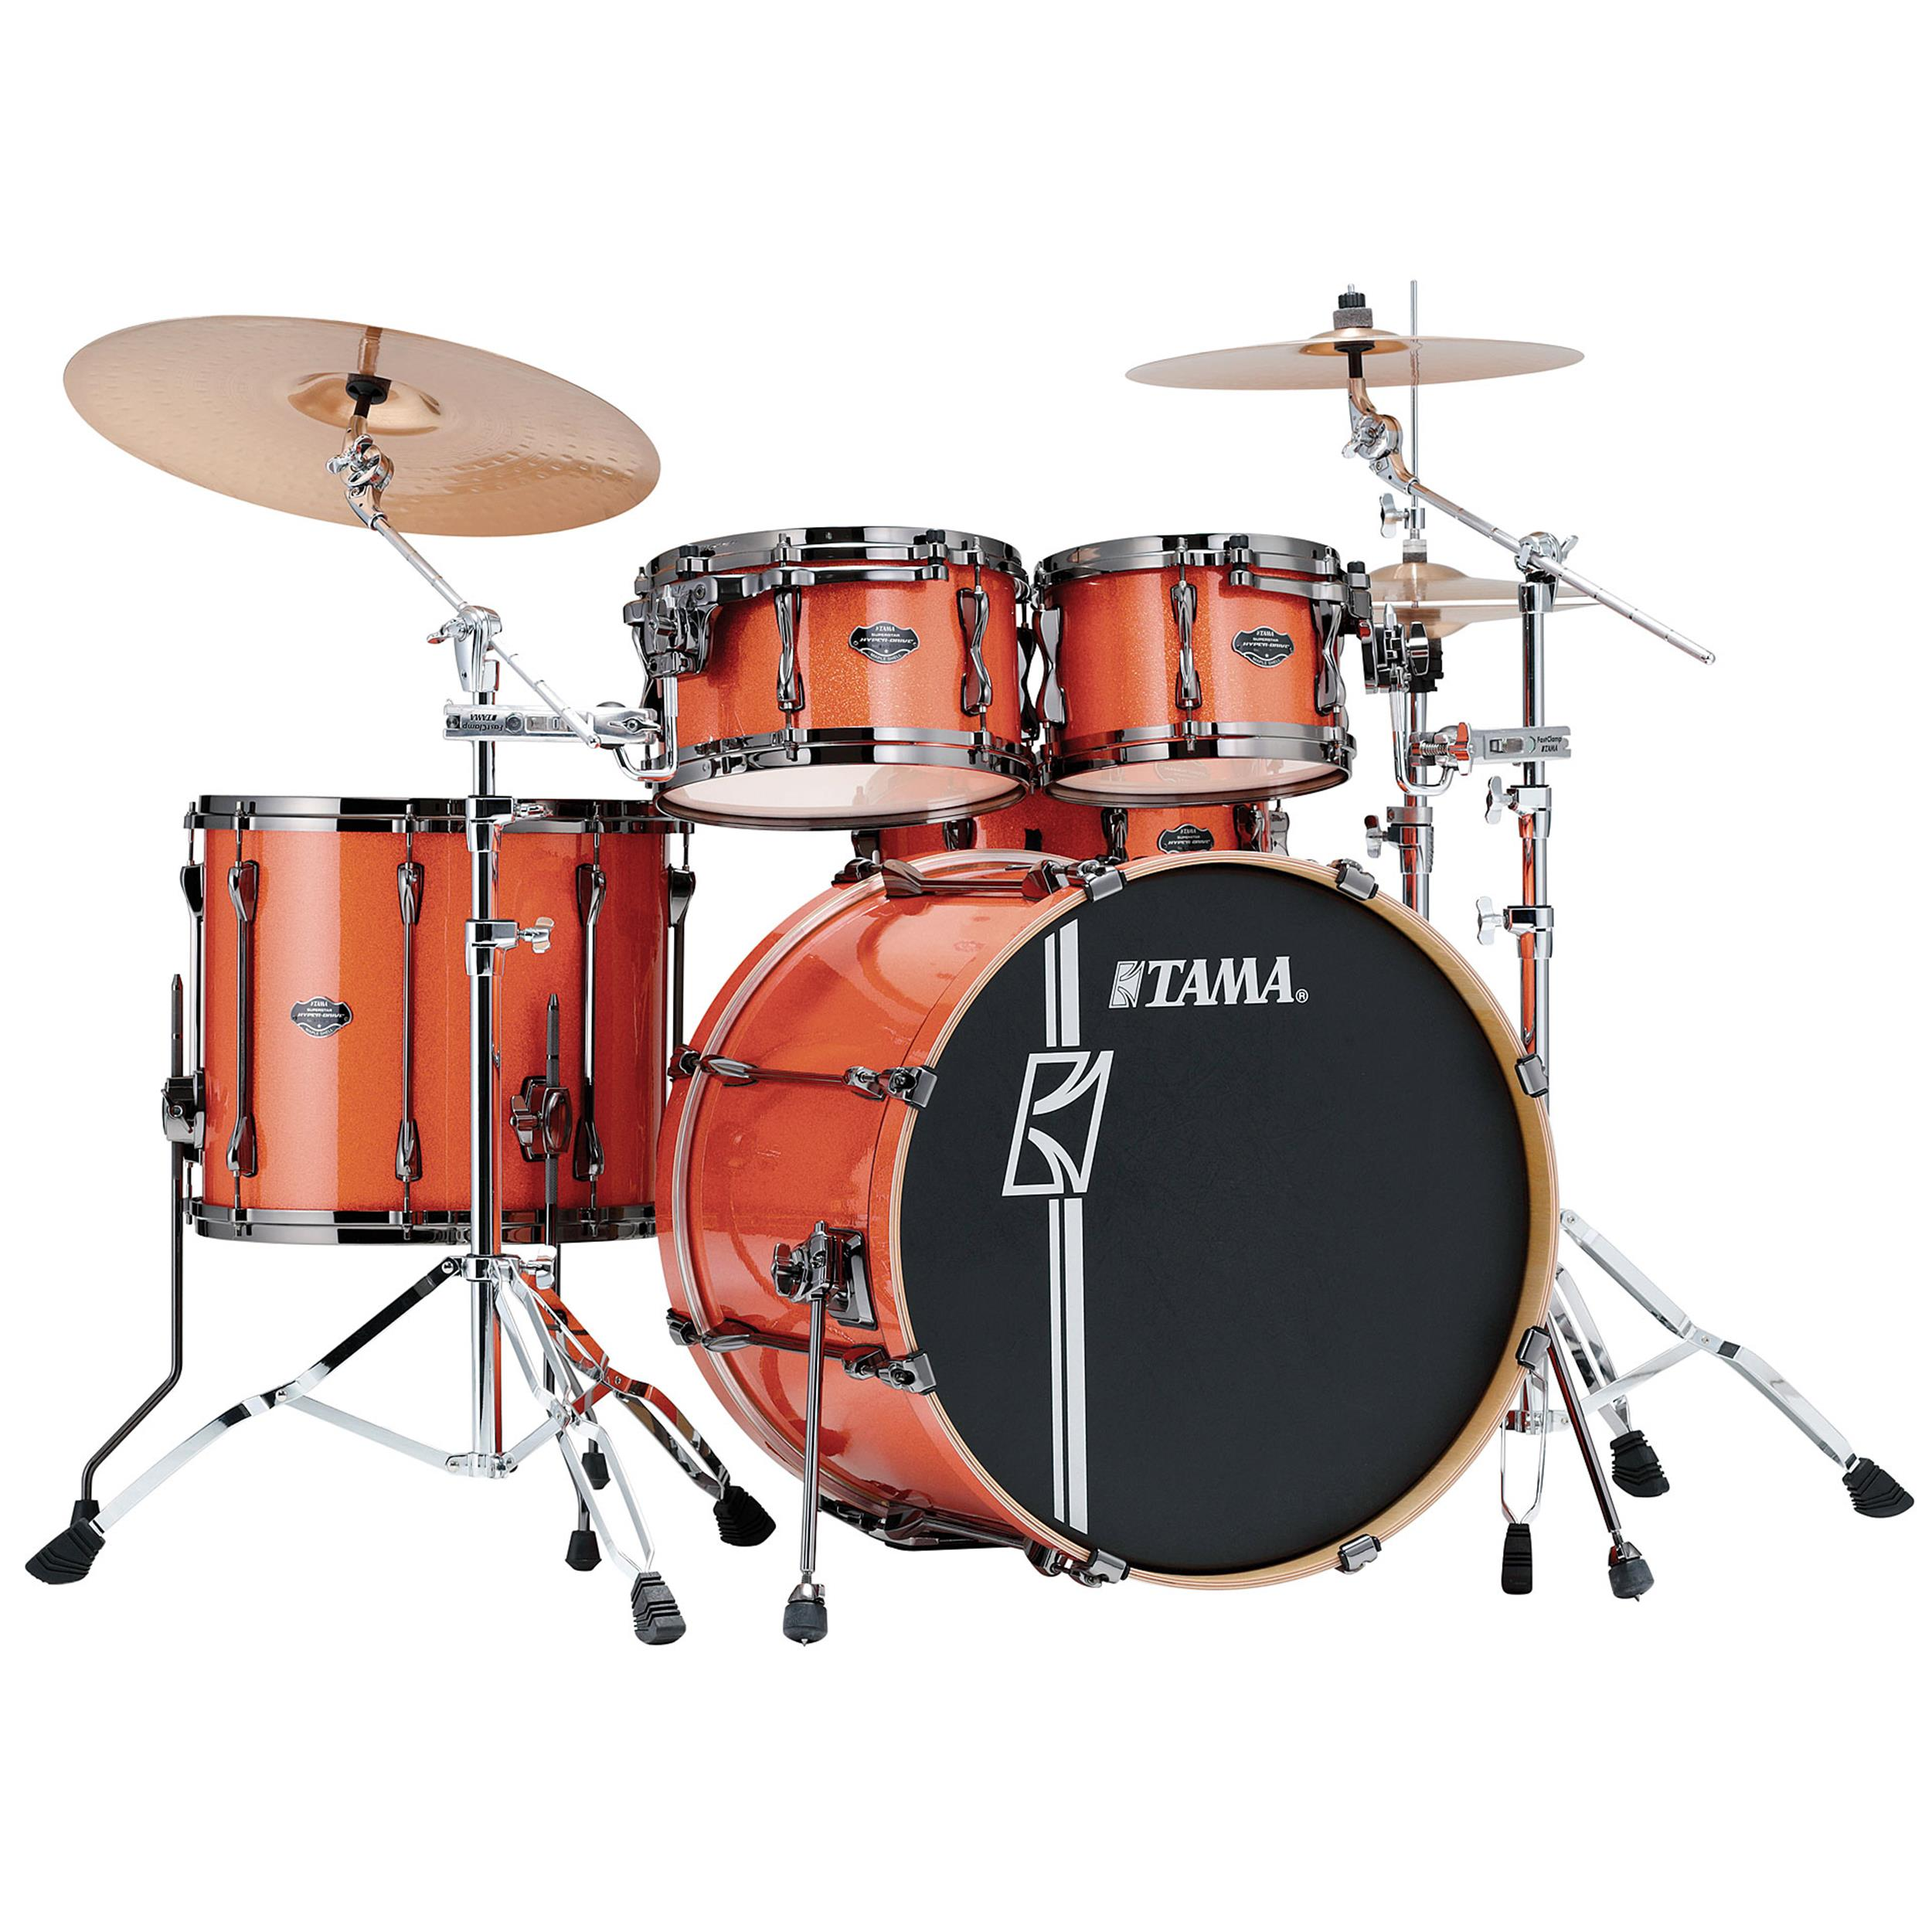 TAMA-MK42HLZBNS-BOS-ORANGE-SUPERSTAR-sku-18807